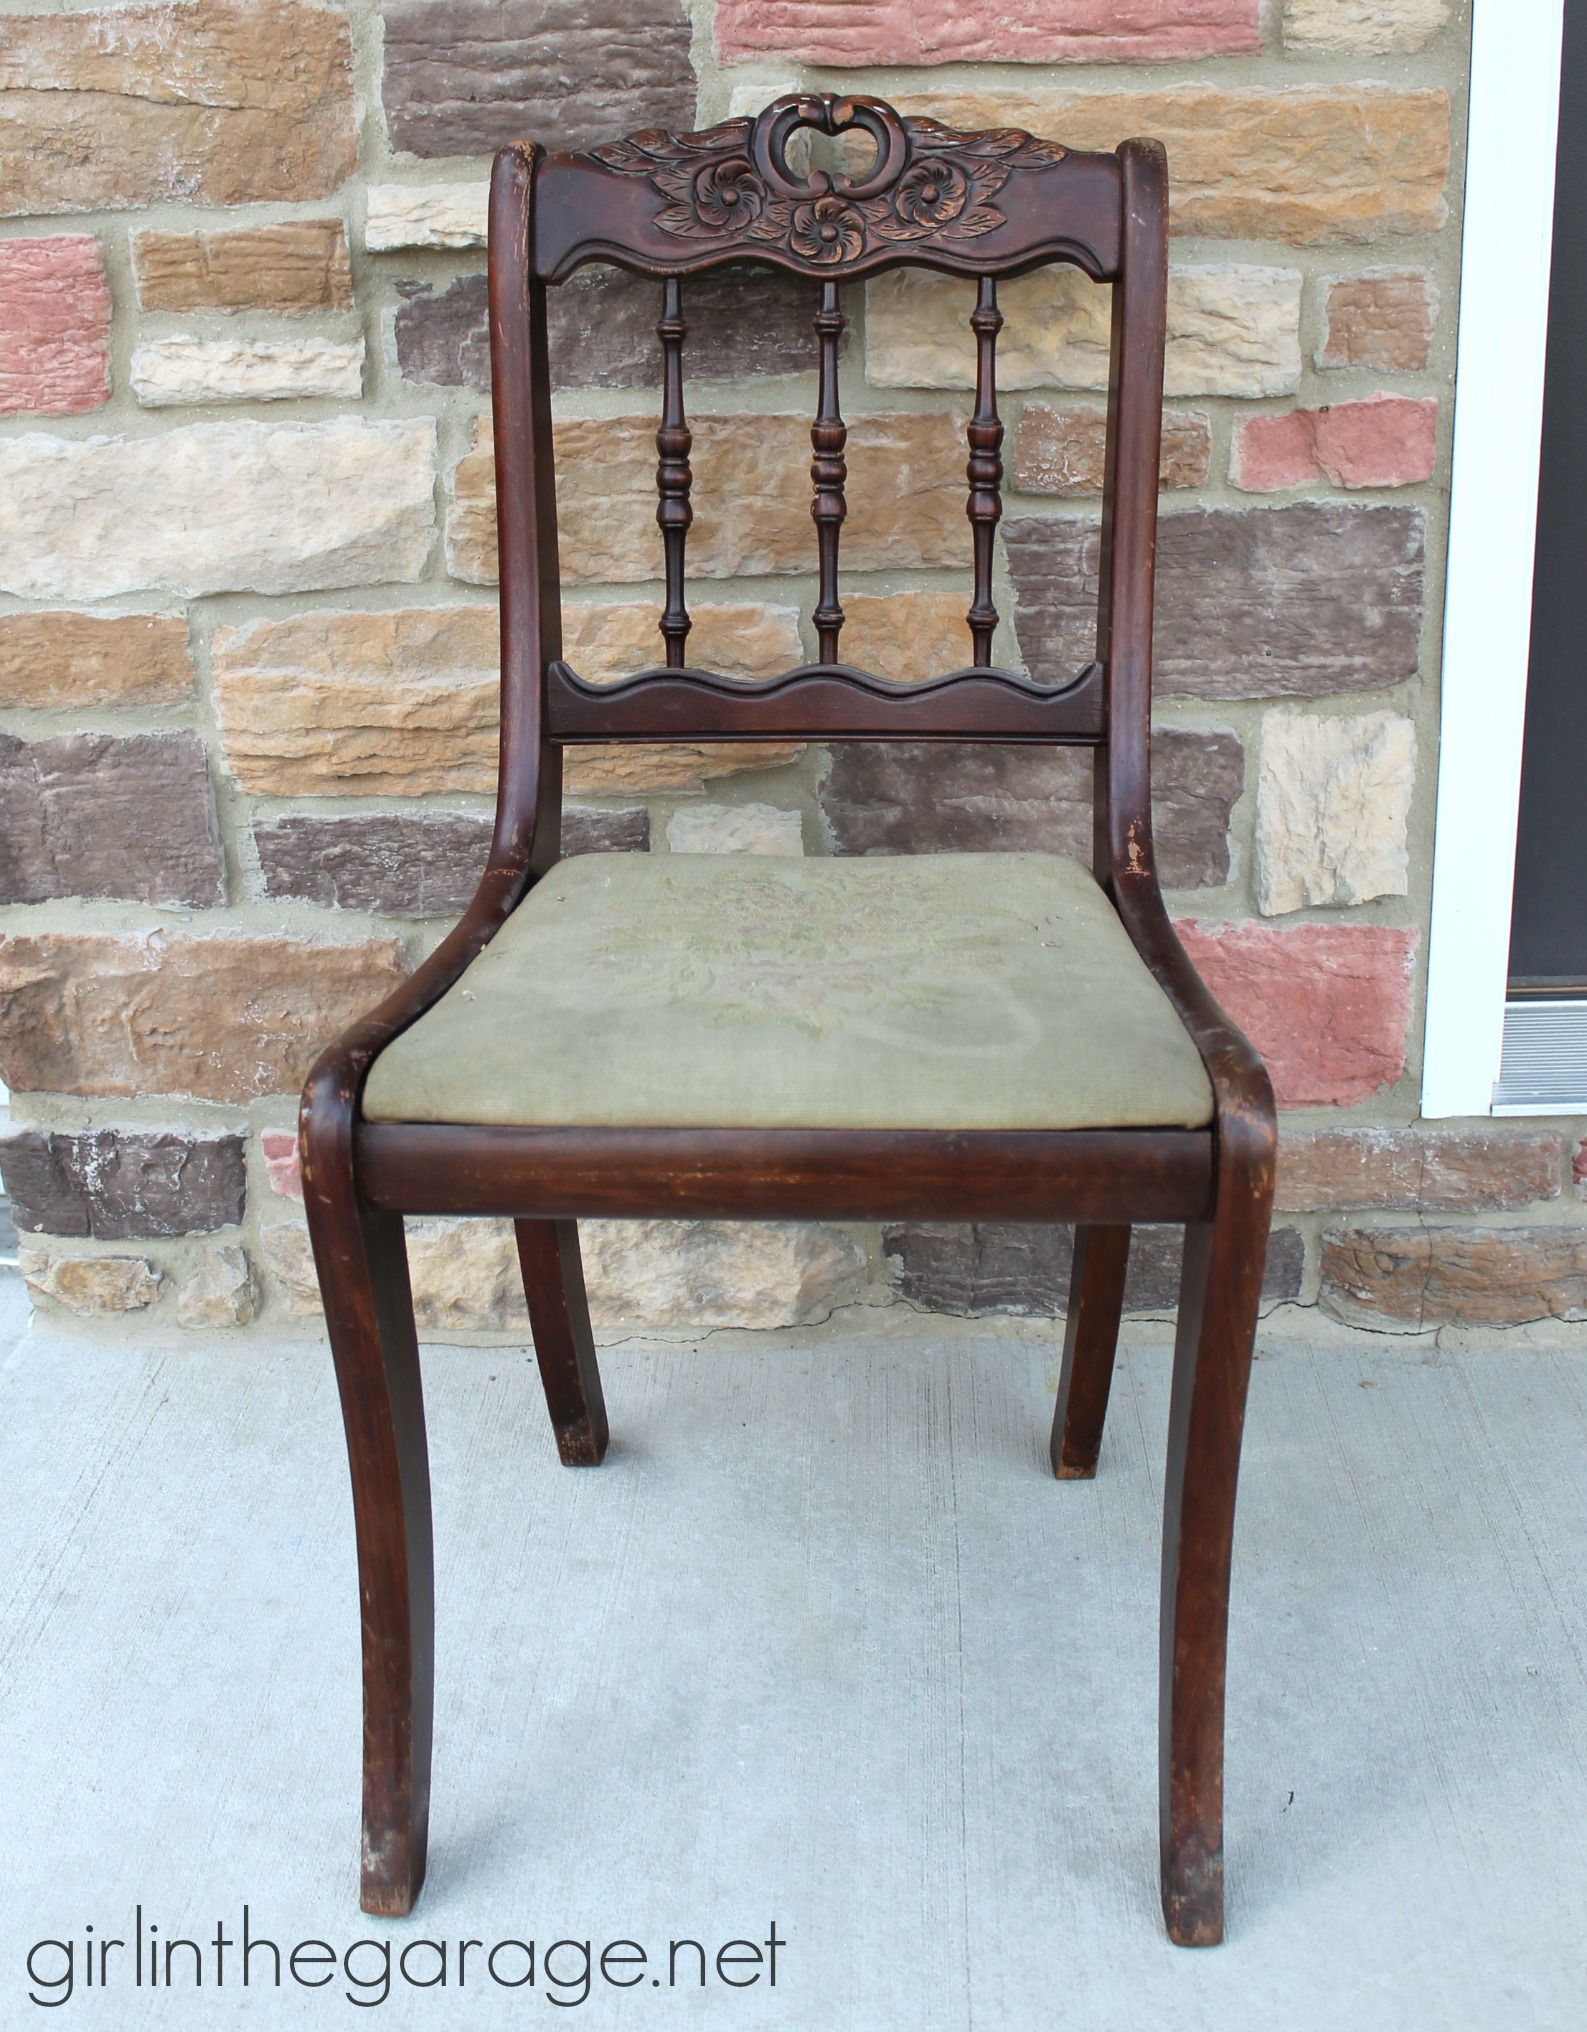 Antique Wooden Chair Shabby Chic Chair Makeover Girl In The Garage